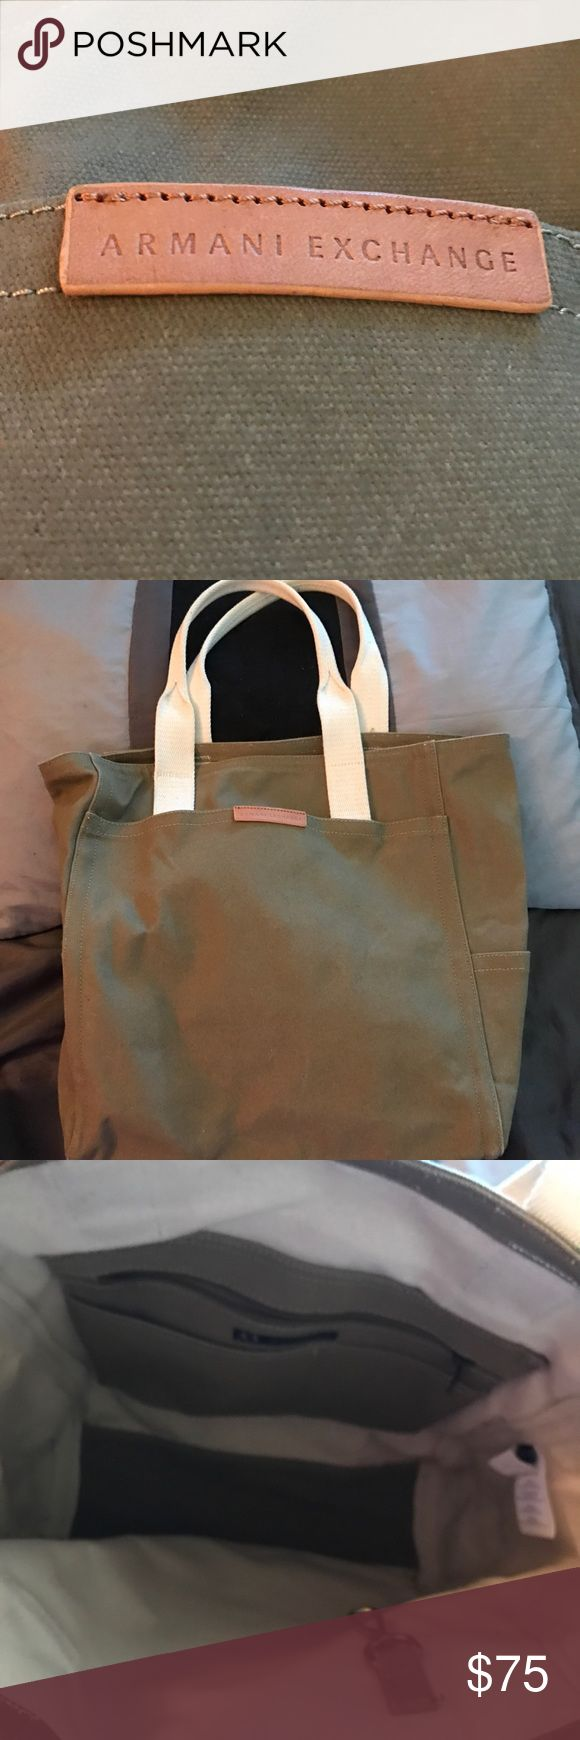 💯 %Authentic Armani Exchange tote bag NEW 💯 %Authentic Armani Exchange canvas tote bag NEW color cream and military green color  This roomy canvas tote has sturdy style.  Easy everyday tote.   Leather branded patch and multiple pockets see the pic Armani Exchange Bags Totes